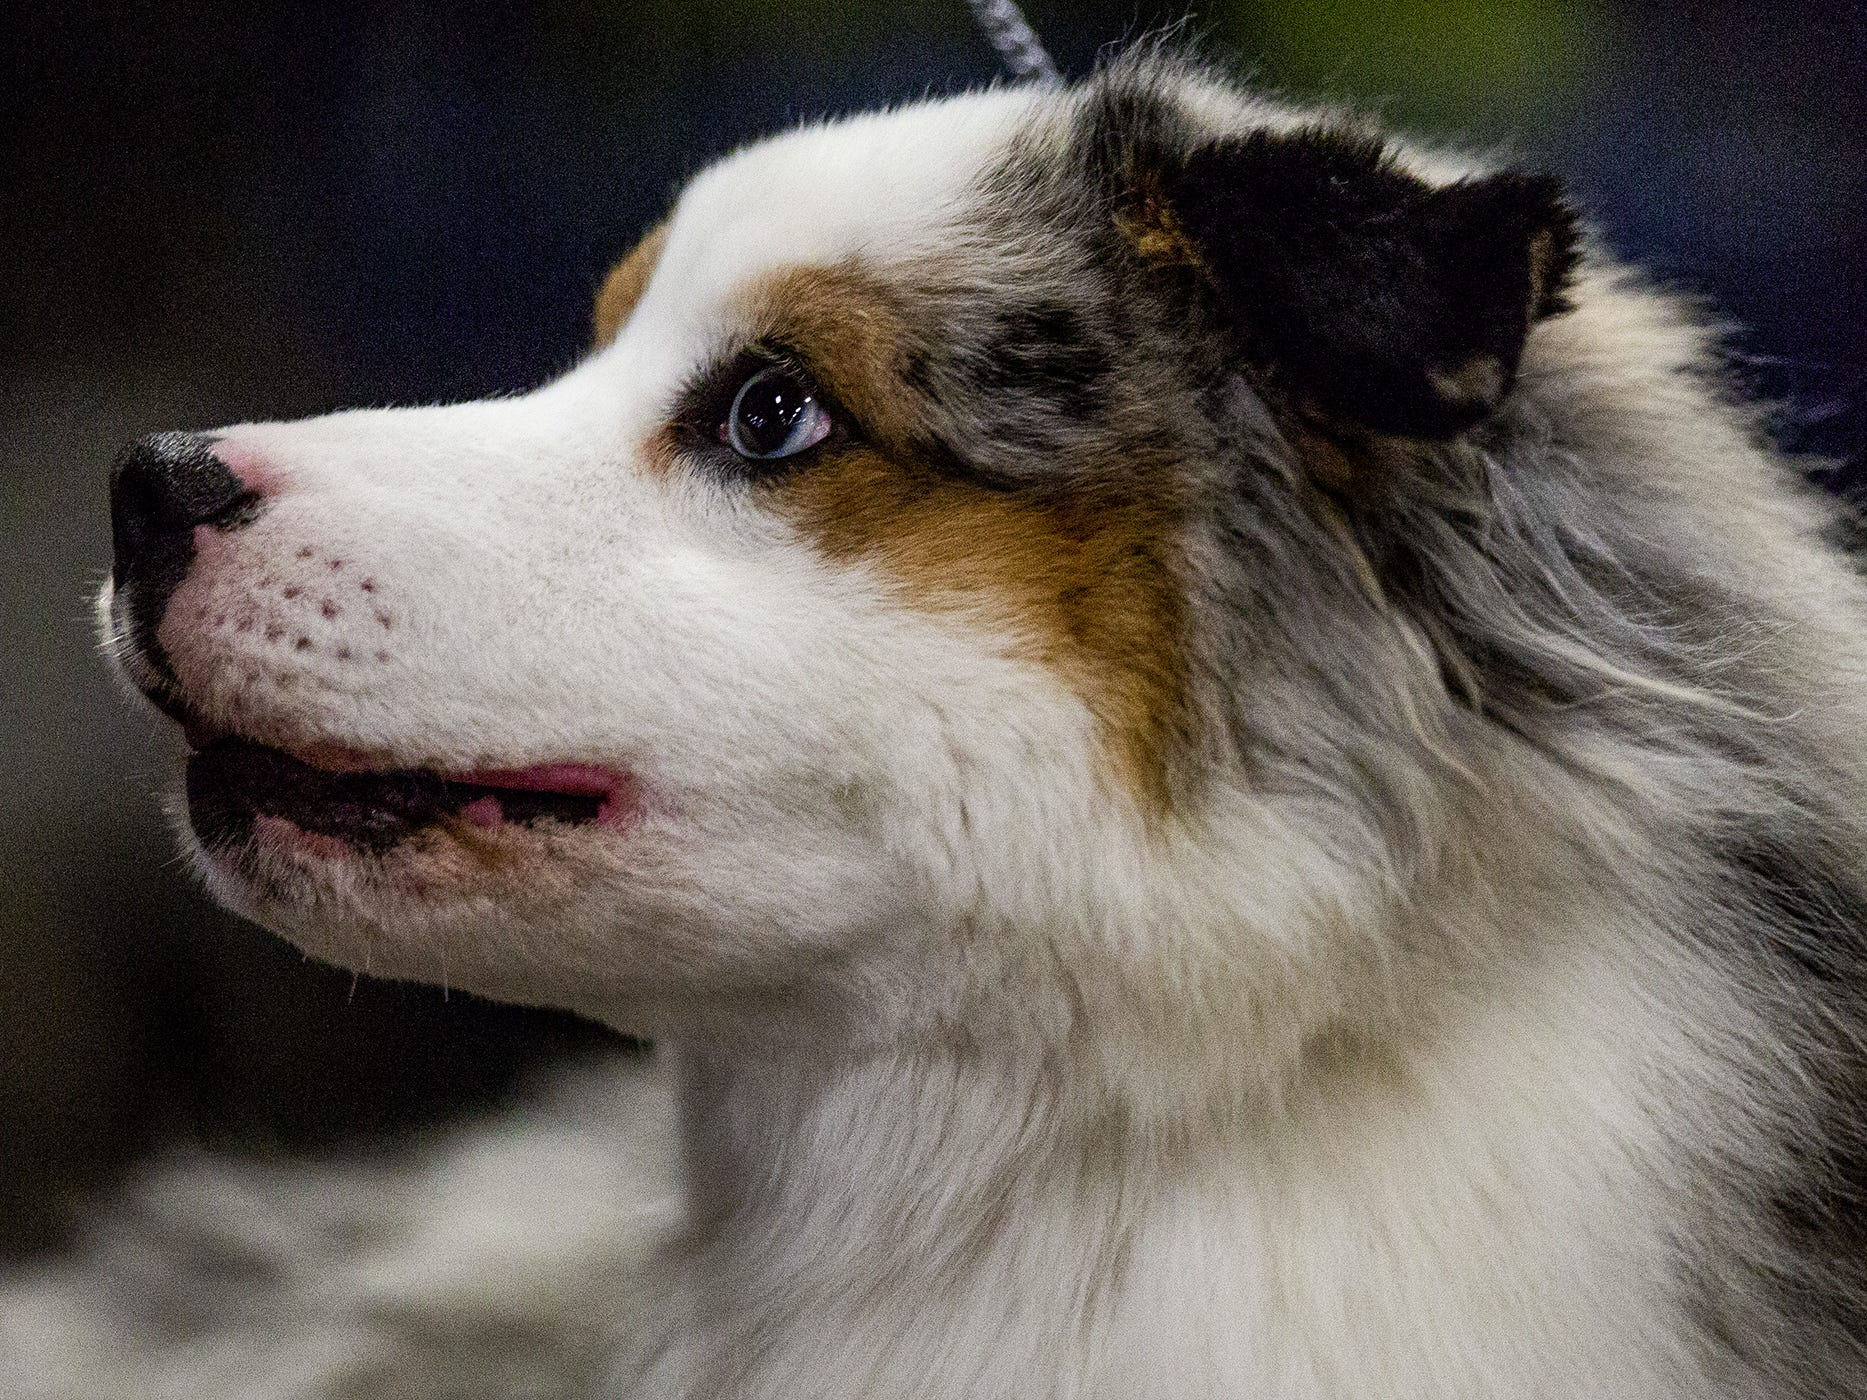 An Australian Shepherd pup barks to get attention at the 2019 Kentuckiana Cluster of Dog Shows at the Kentucky Exposition Center. March 14, 2019.